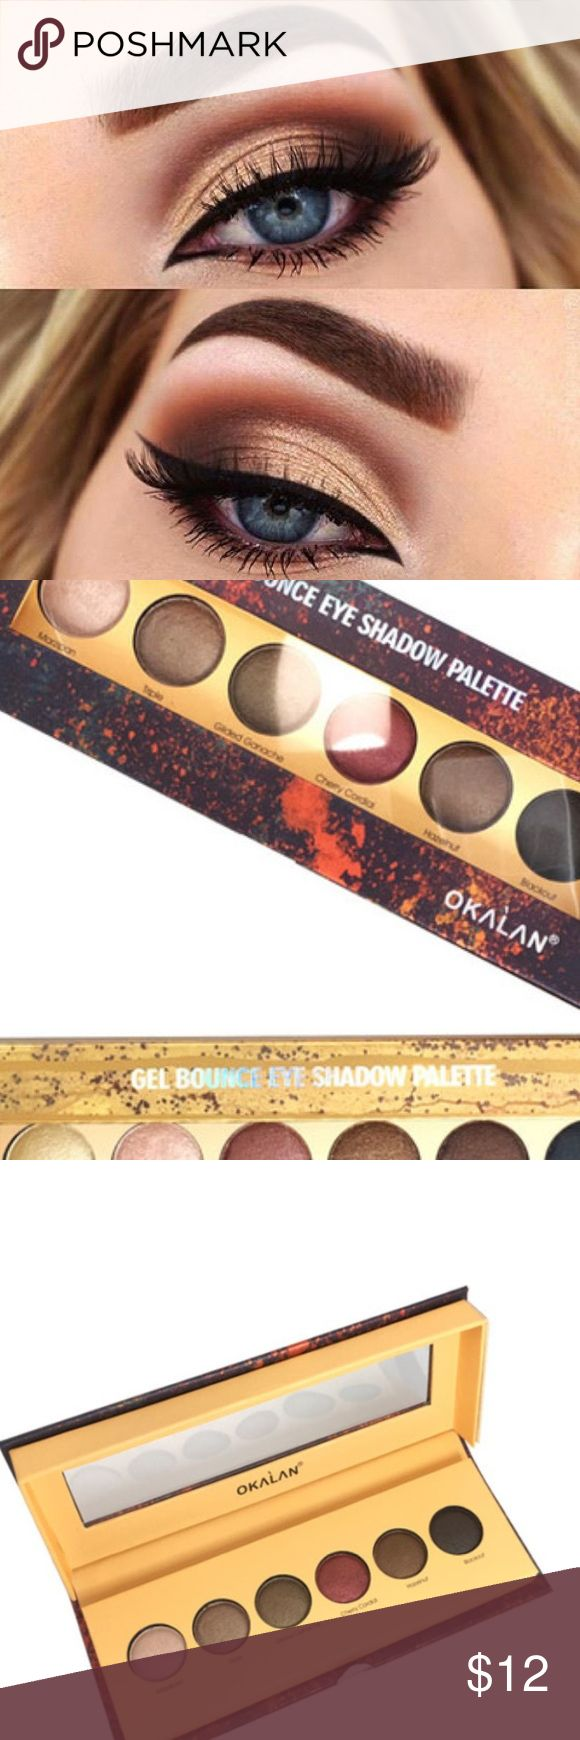 New!! Gel bounce high pigmented eyeshadow Brand new in box beautiful colors very highly pigmented choose between which box you want the yellow box or the Redbox Makeup Eyeshadow